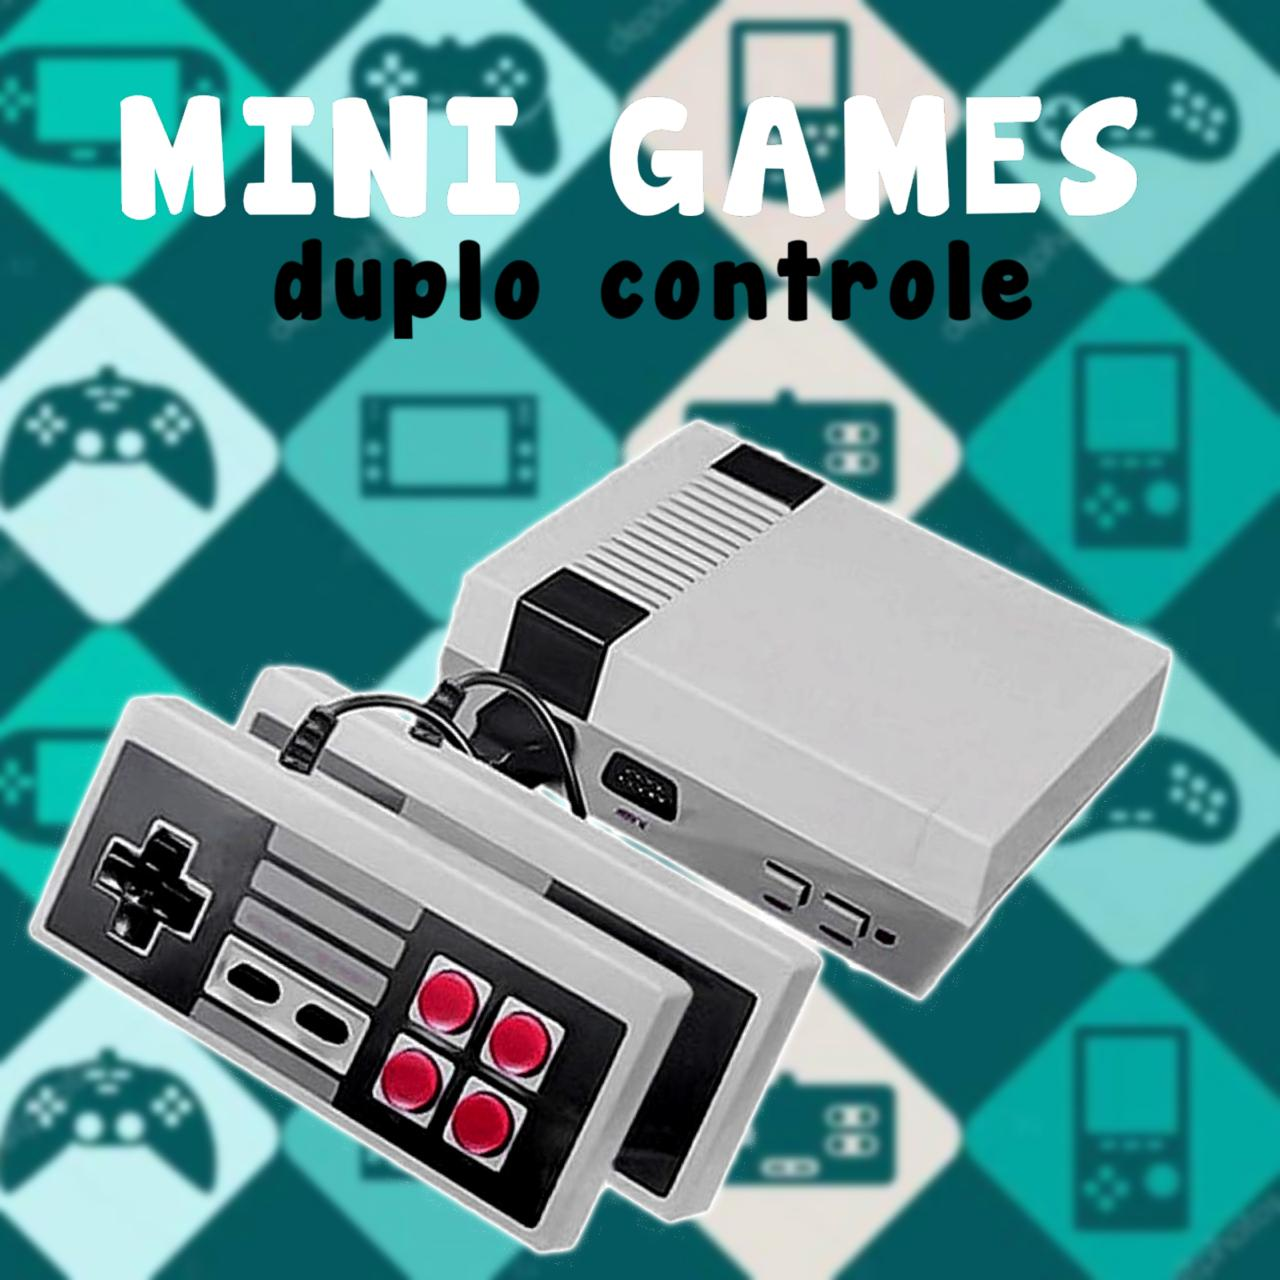 VIDEO GAME 620 EM 1 DE 8 BITS RETRO COM 2 GAMEPAD GC05 03358 Super NES Classic Edition